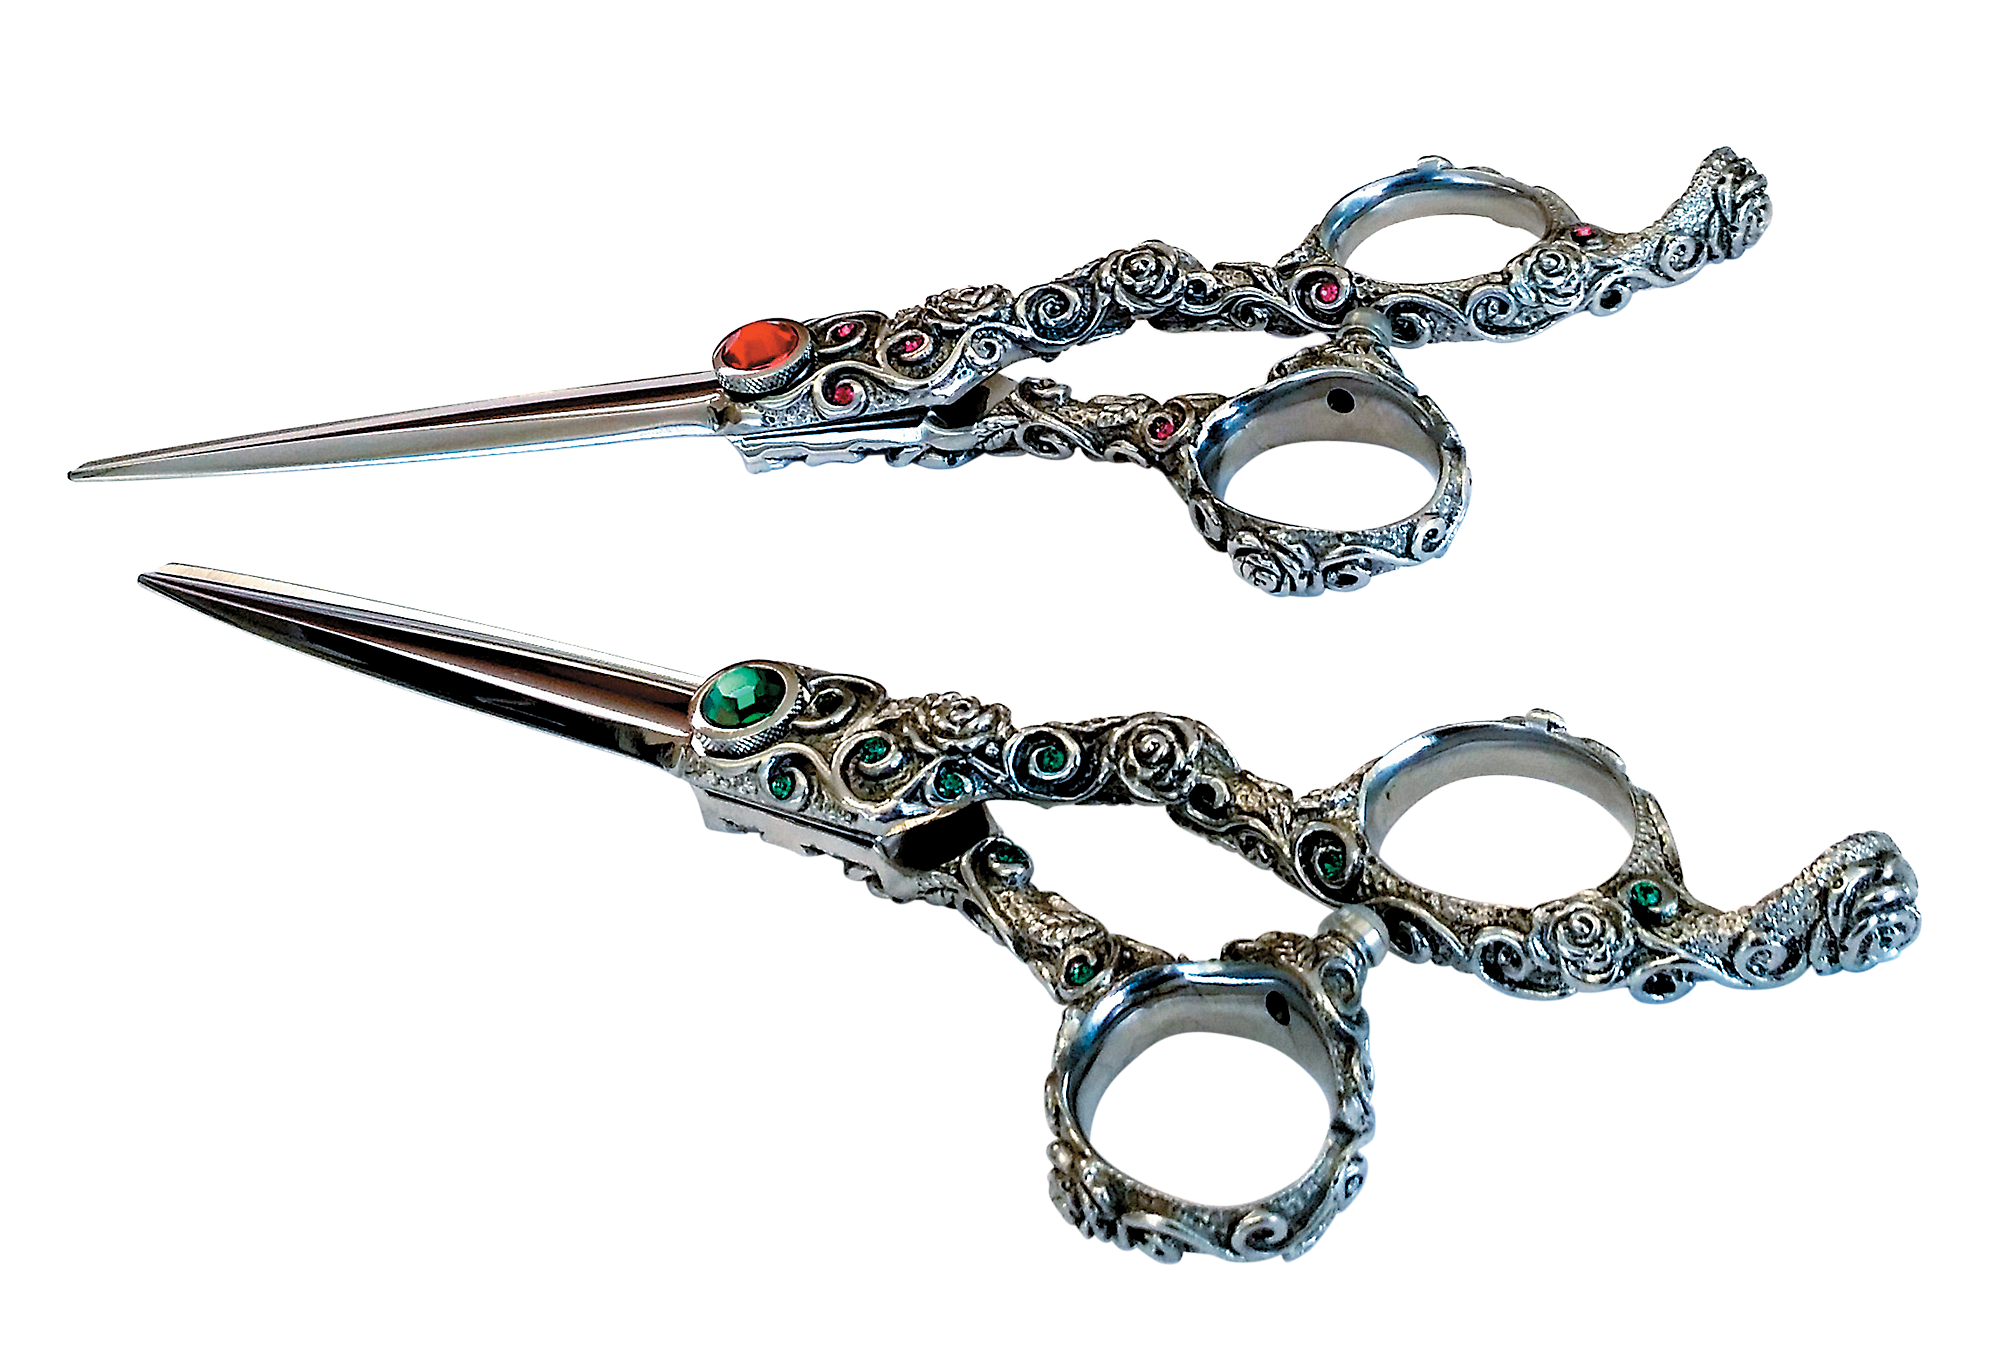 KAMISORI Jade & Rosa shears are handcrafted and forged with ATS-314 cobalt stainless super steel. They're perfect for soft cuts as well as slice-, point- and blunt-cutting.